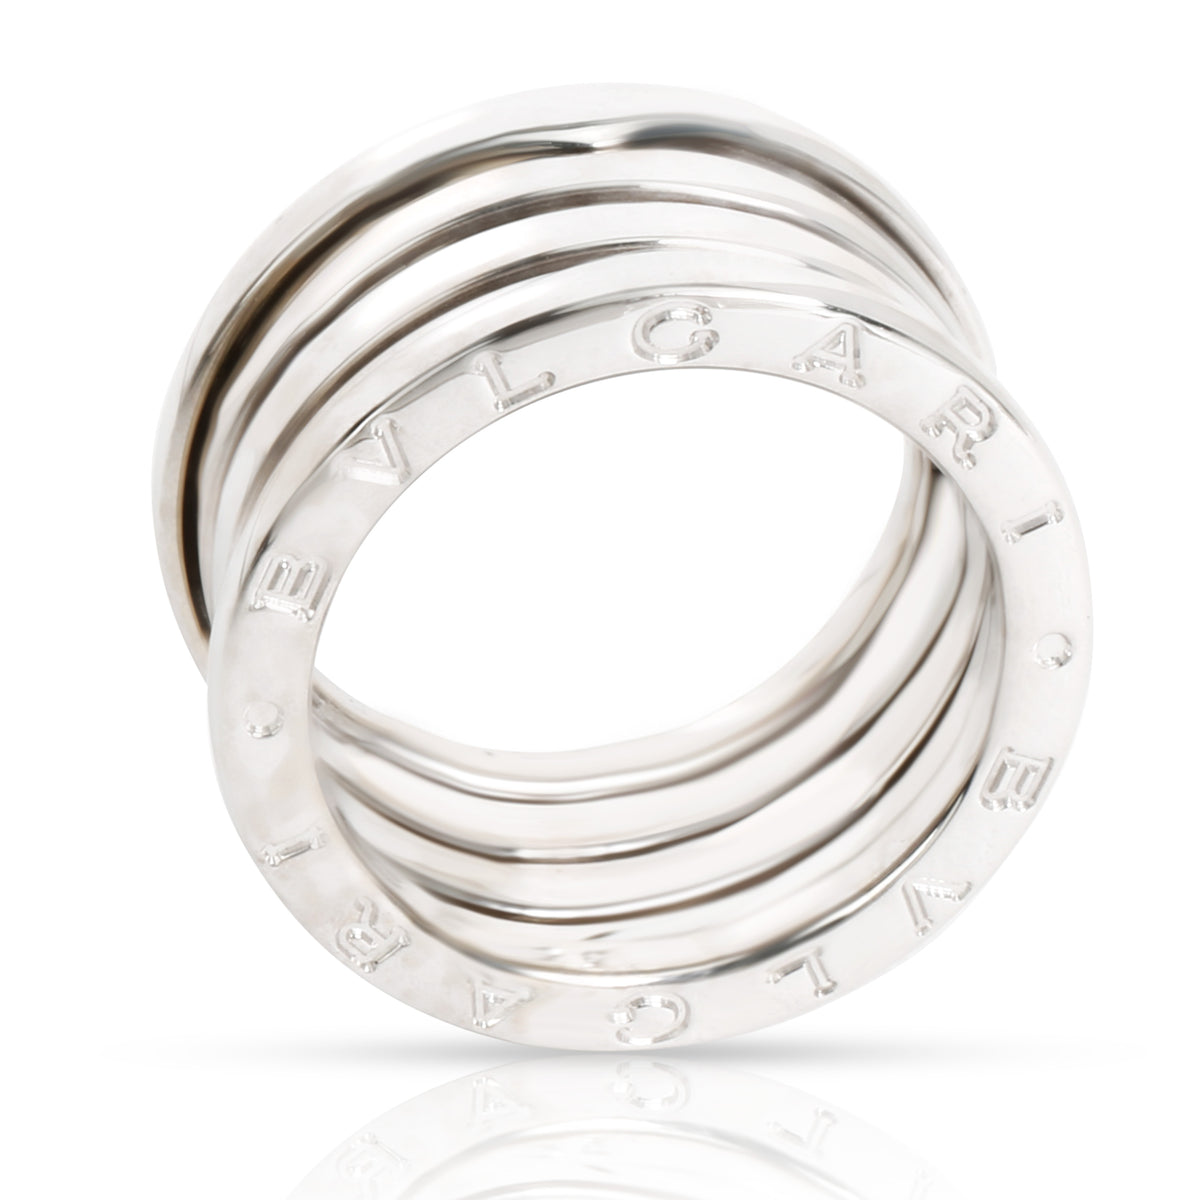 Bulgari B Zero Ring in 18K White Gold